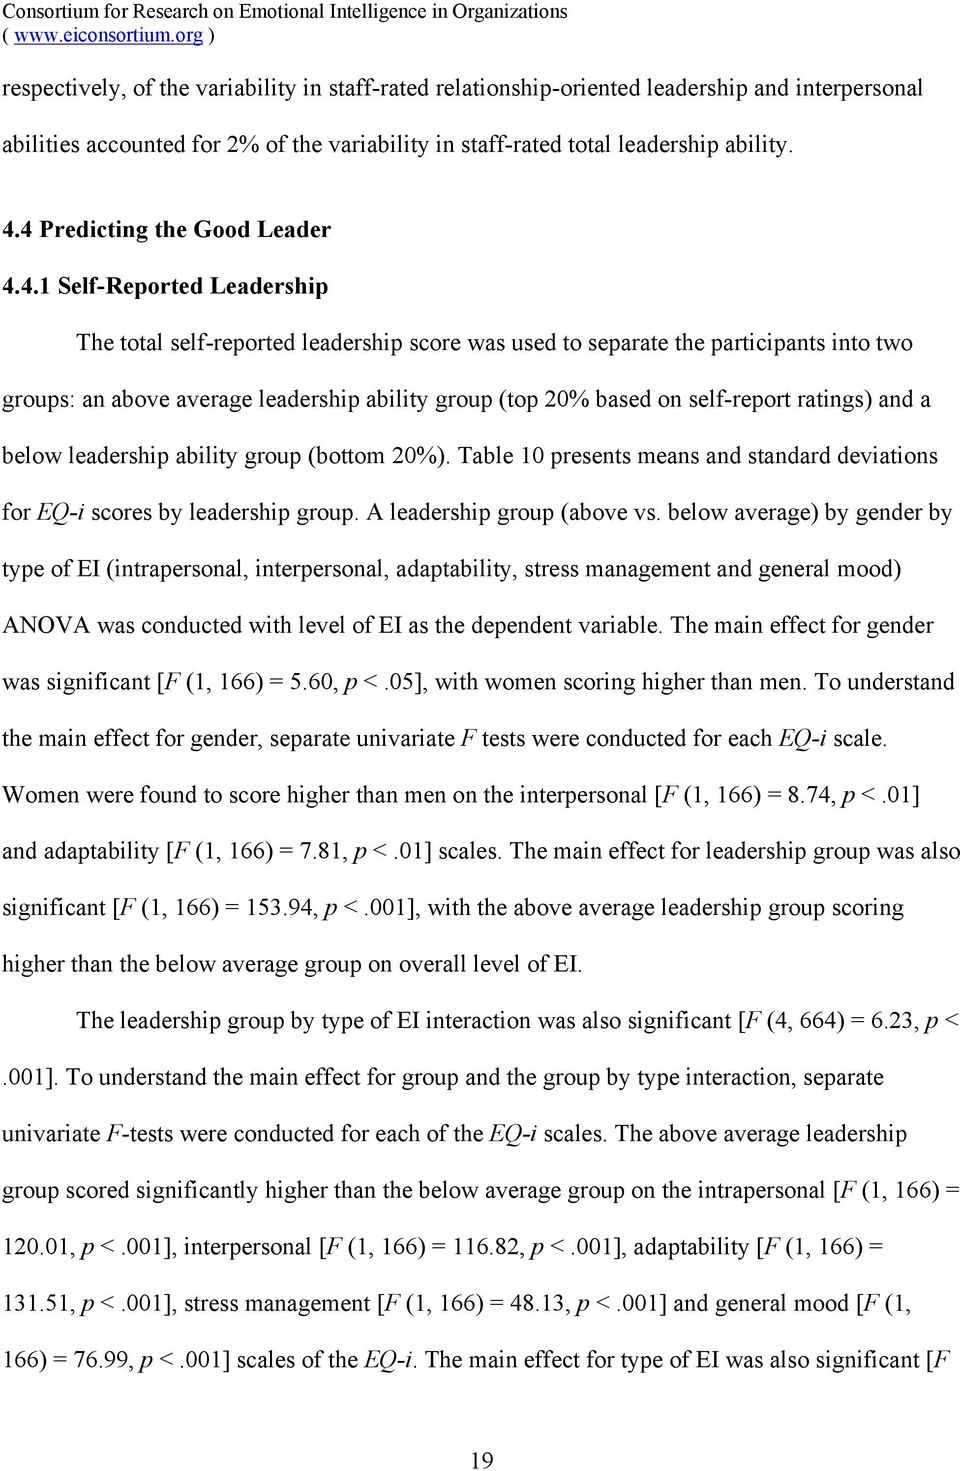 (top 20% based on self-report ratings) and a below leadership ability group (bottom 20%). Table 10 presents means and standard deviations for EQ-i scores by leadership group.